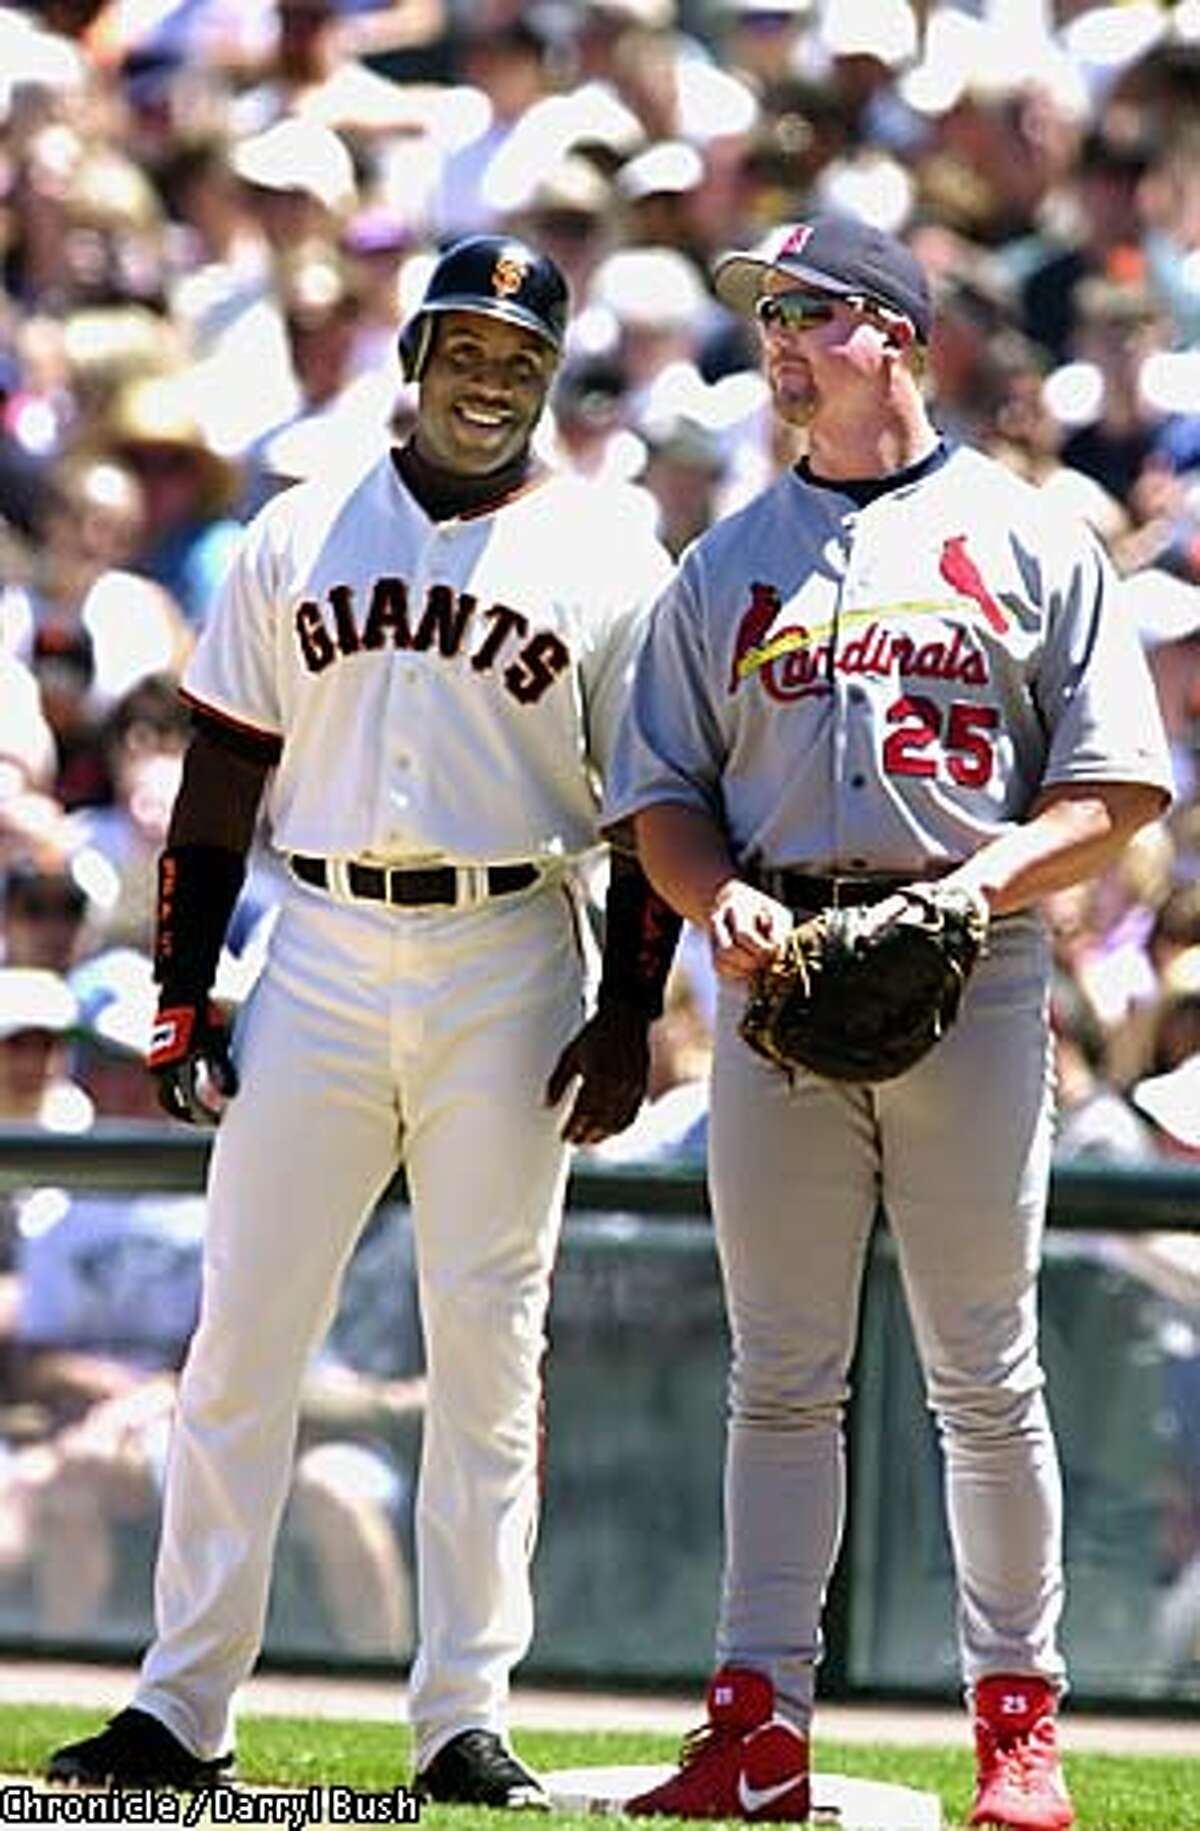 Barry Bonds stood at first base with Mark McGwire, whose home-run record Bonds could shatter. Chronicle photo by Darryl Bush